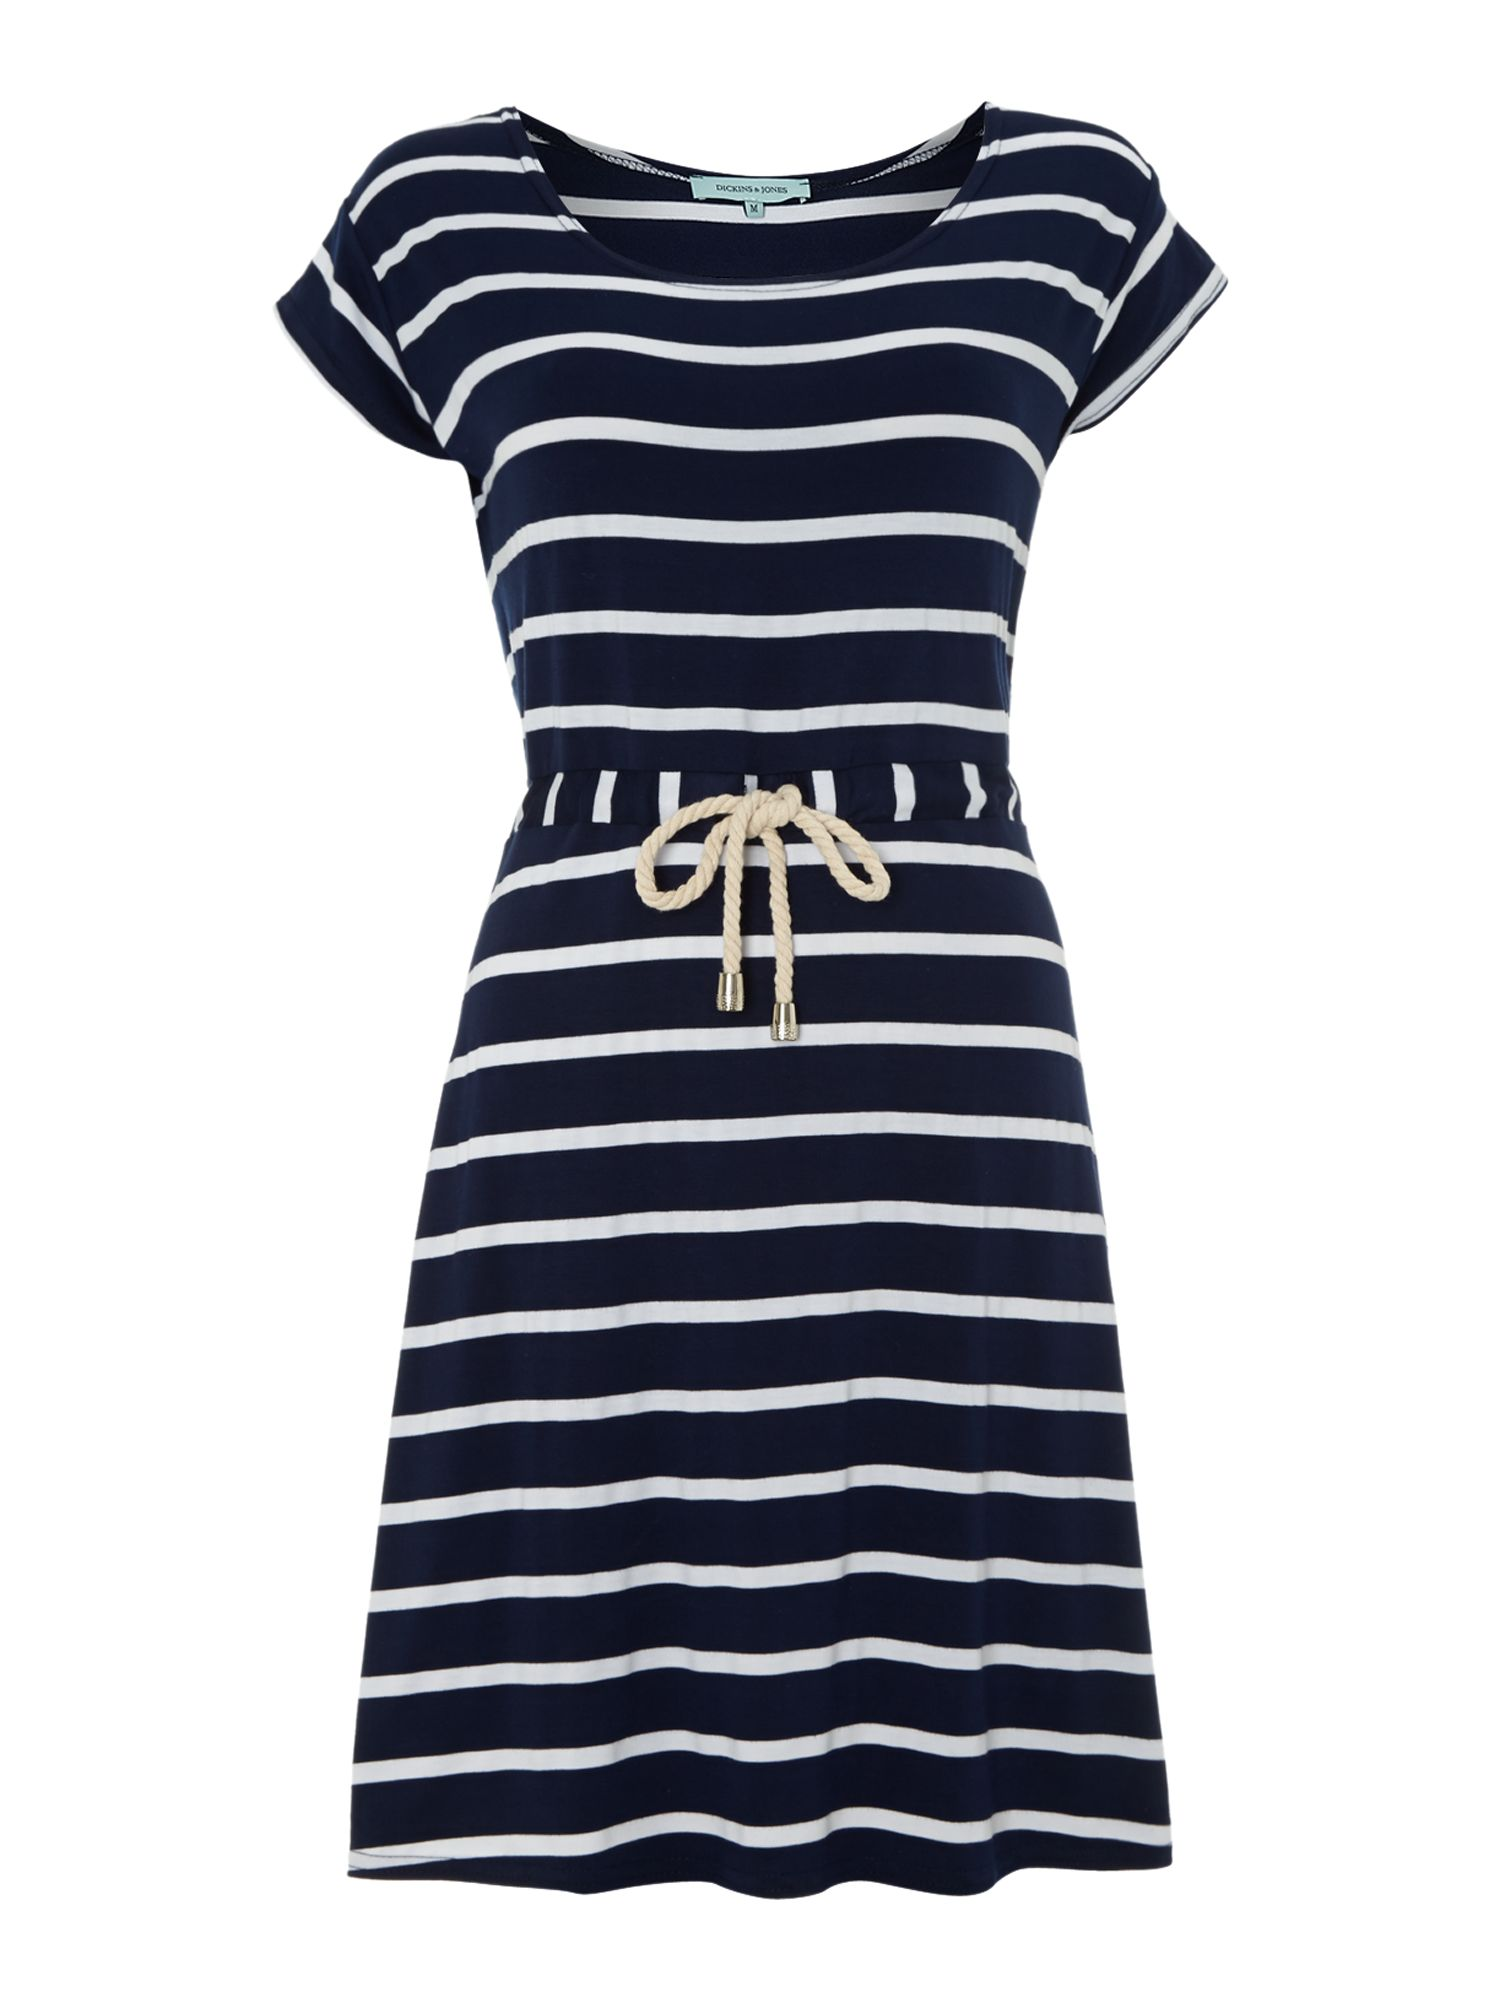 Stripe tennis beach dress